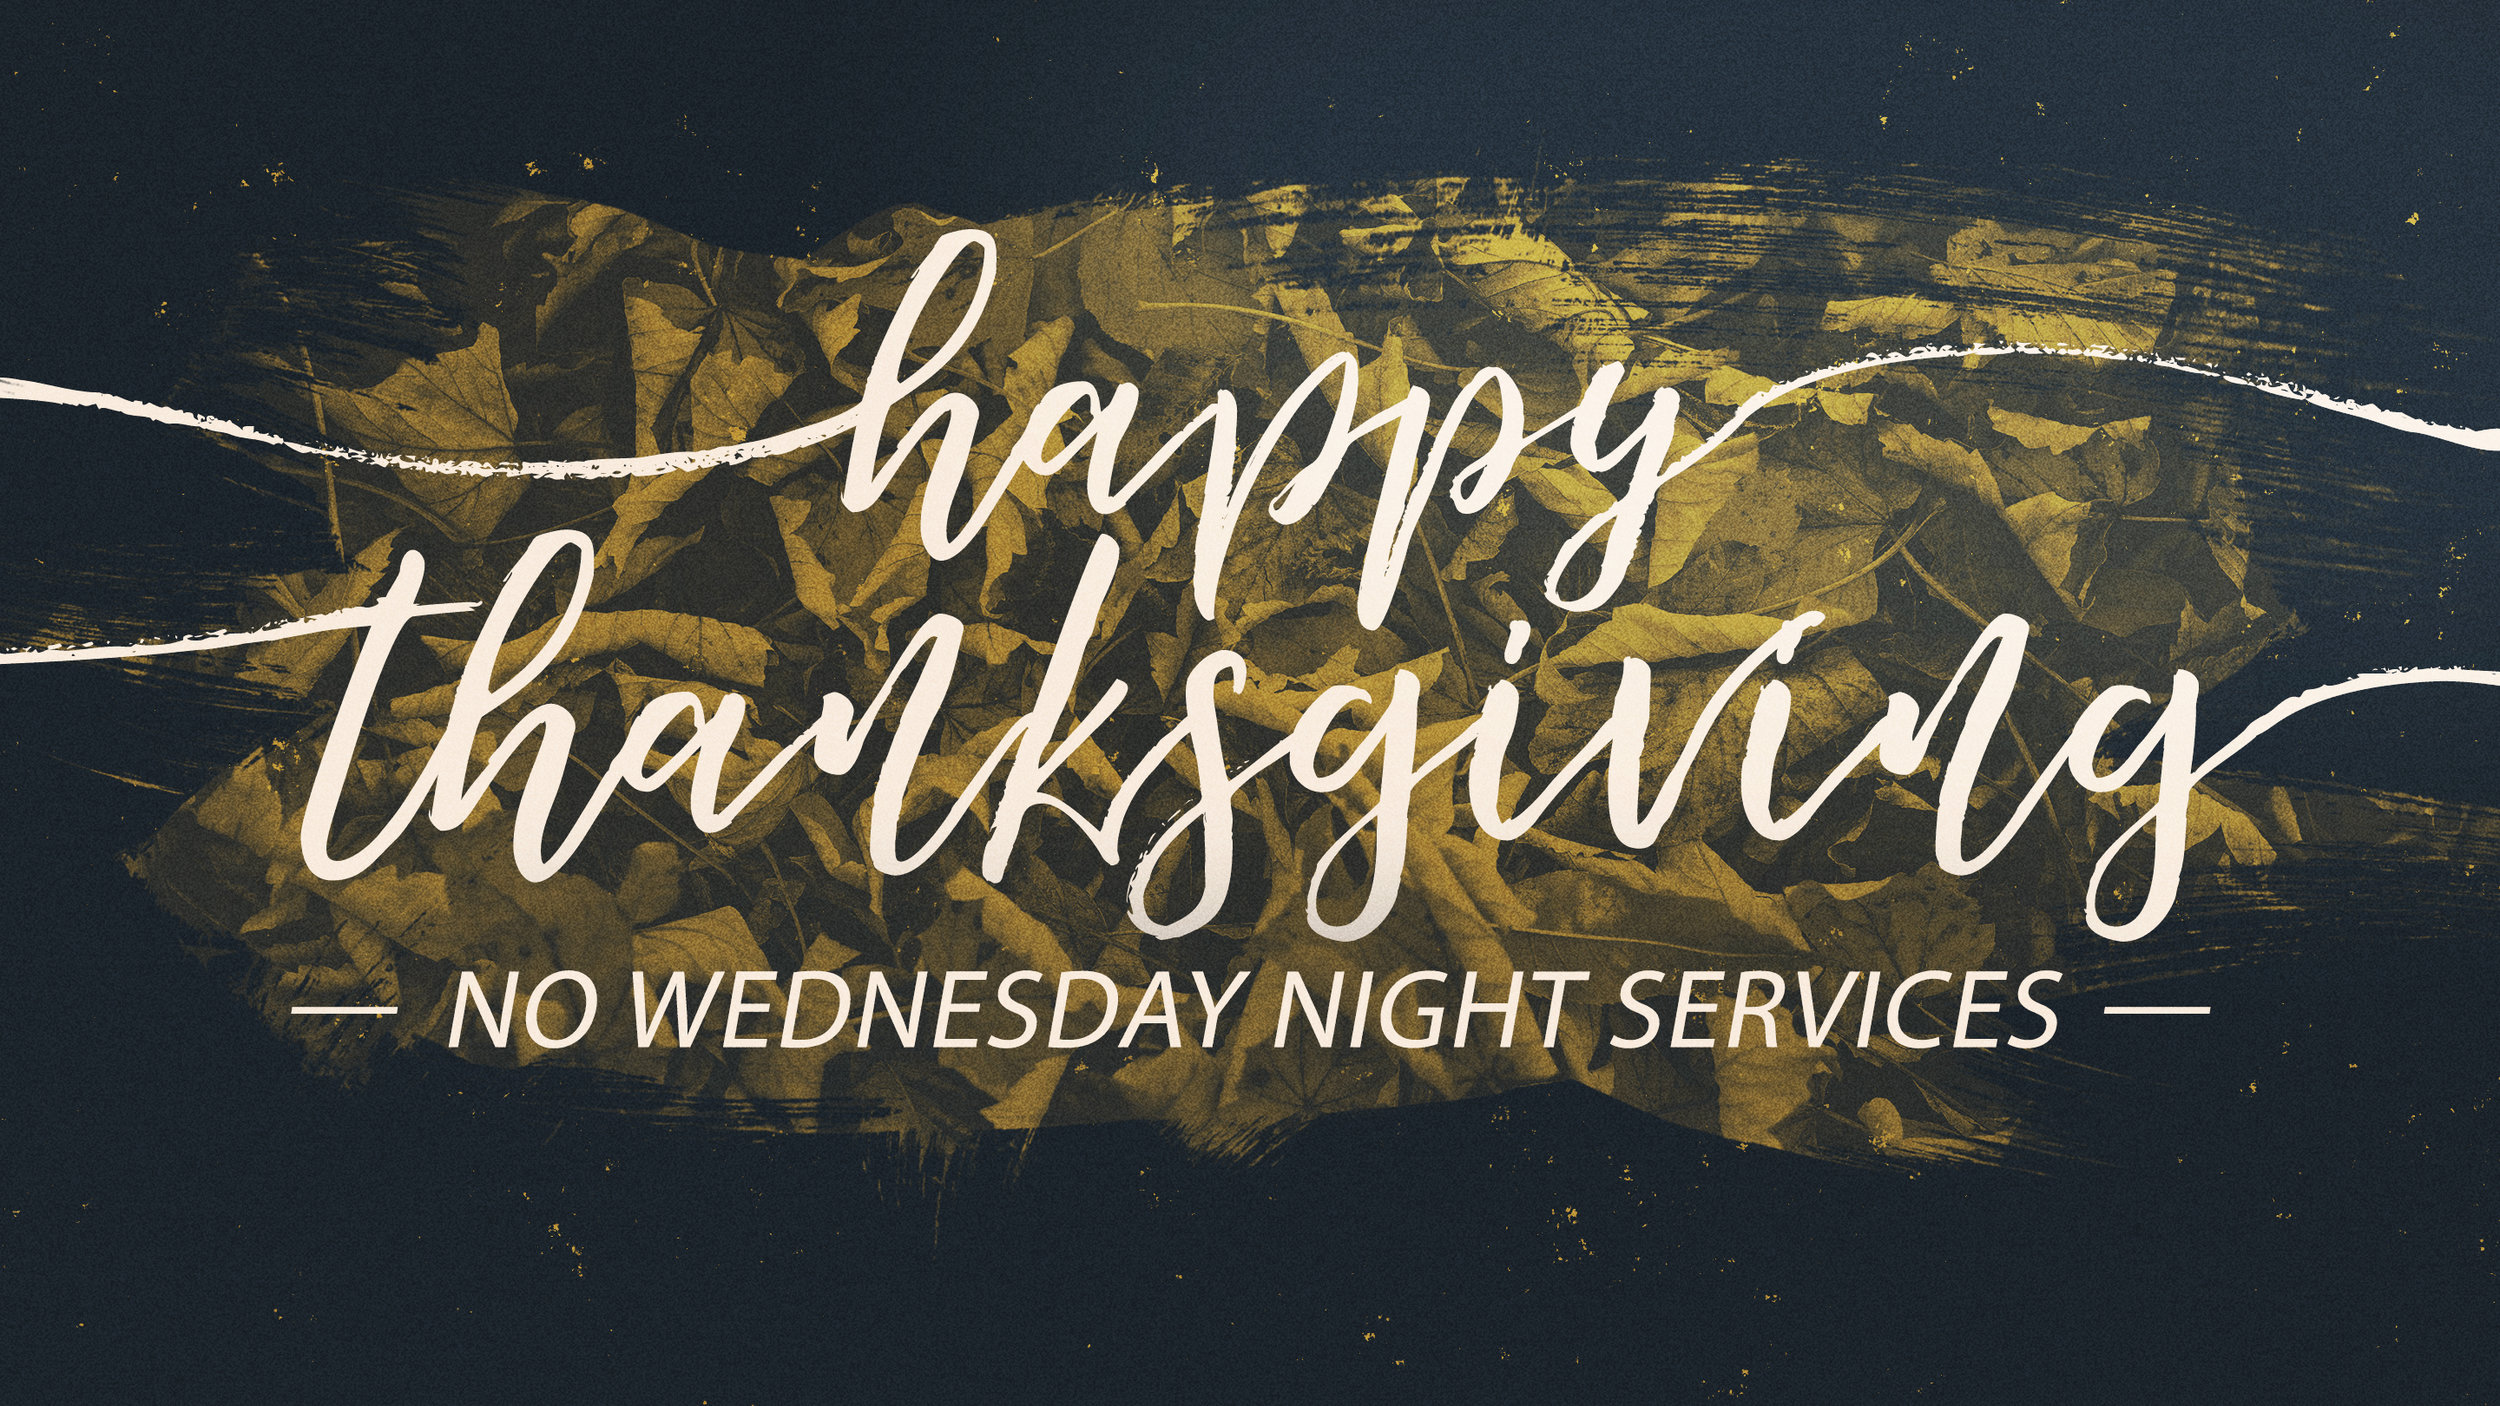 We pray you have a great and relaxing Thanksgiving. There will be no Wednesday night services on November 22nd.